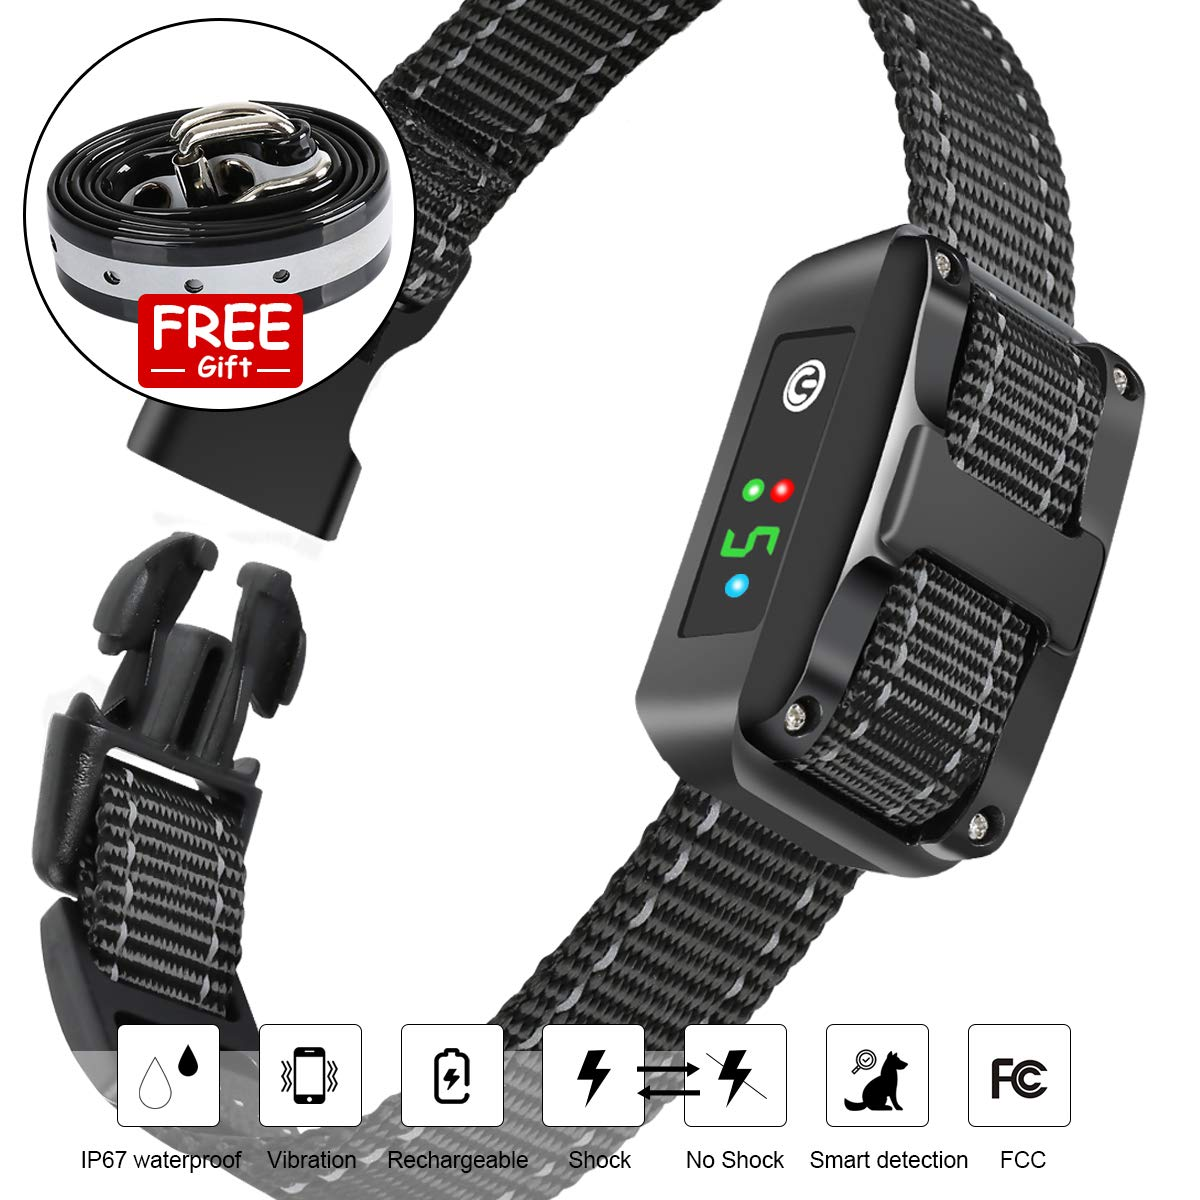 Rechargeable Bark Collar with Upgraded Smart Detection Module - Safe Anti Barking Devices Training Control Collars for Small, Medium, Large Dogs All Breeds, IP67 Waterproof by TEPNICAL